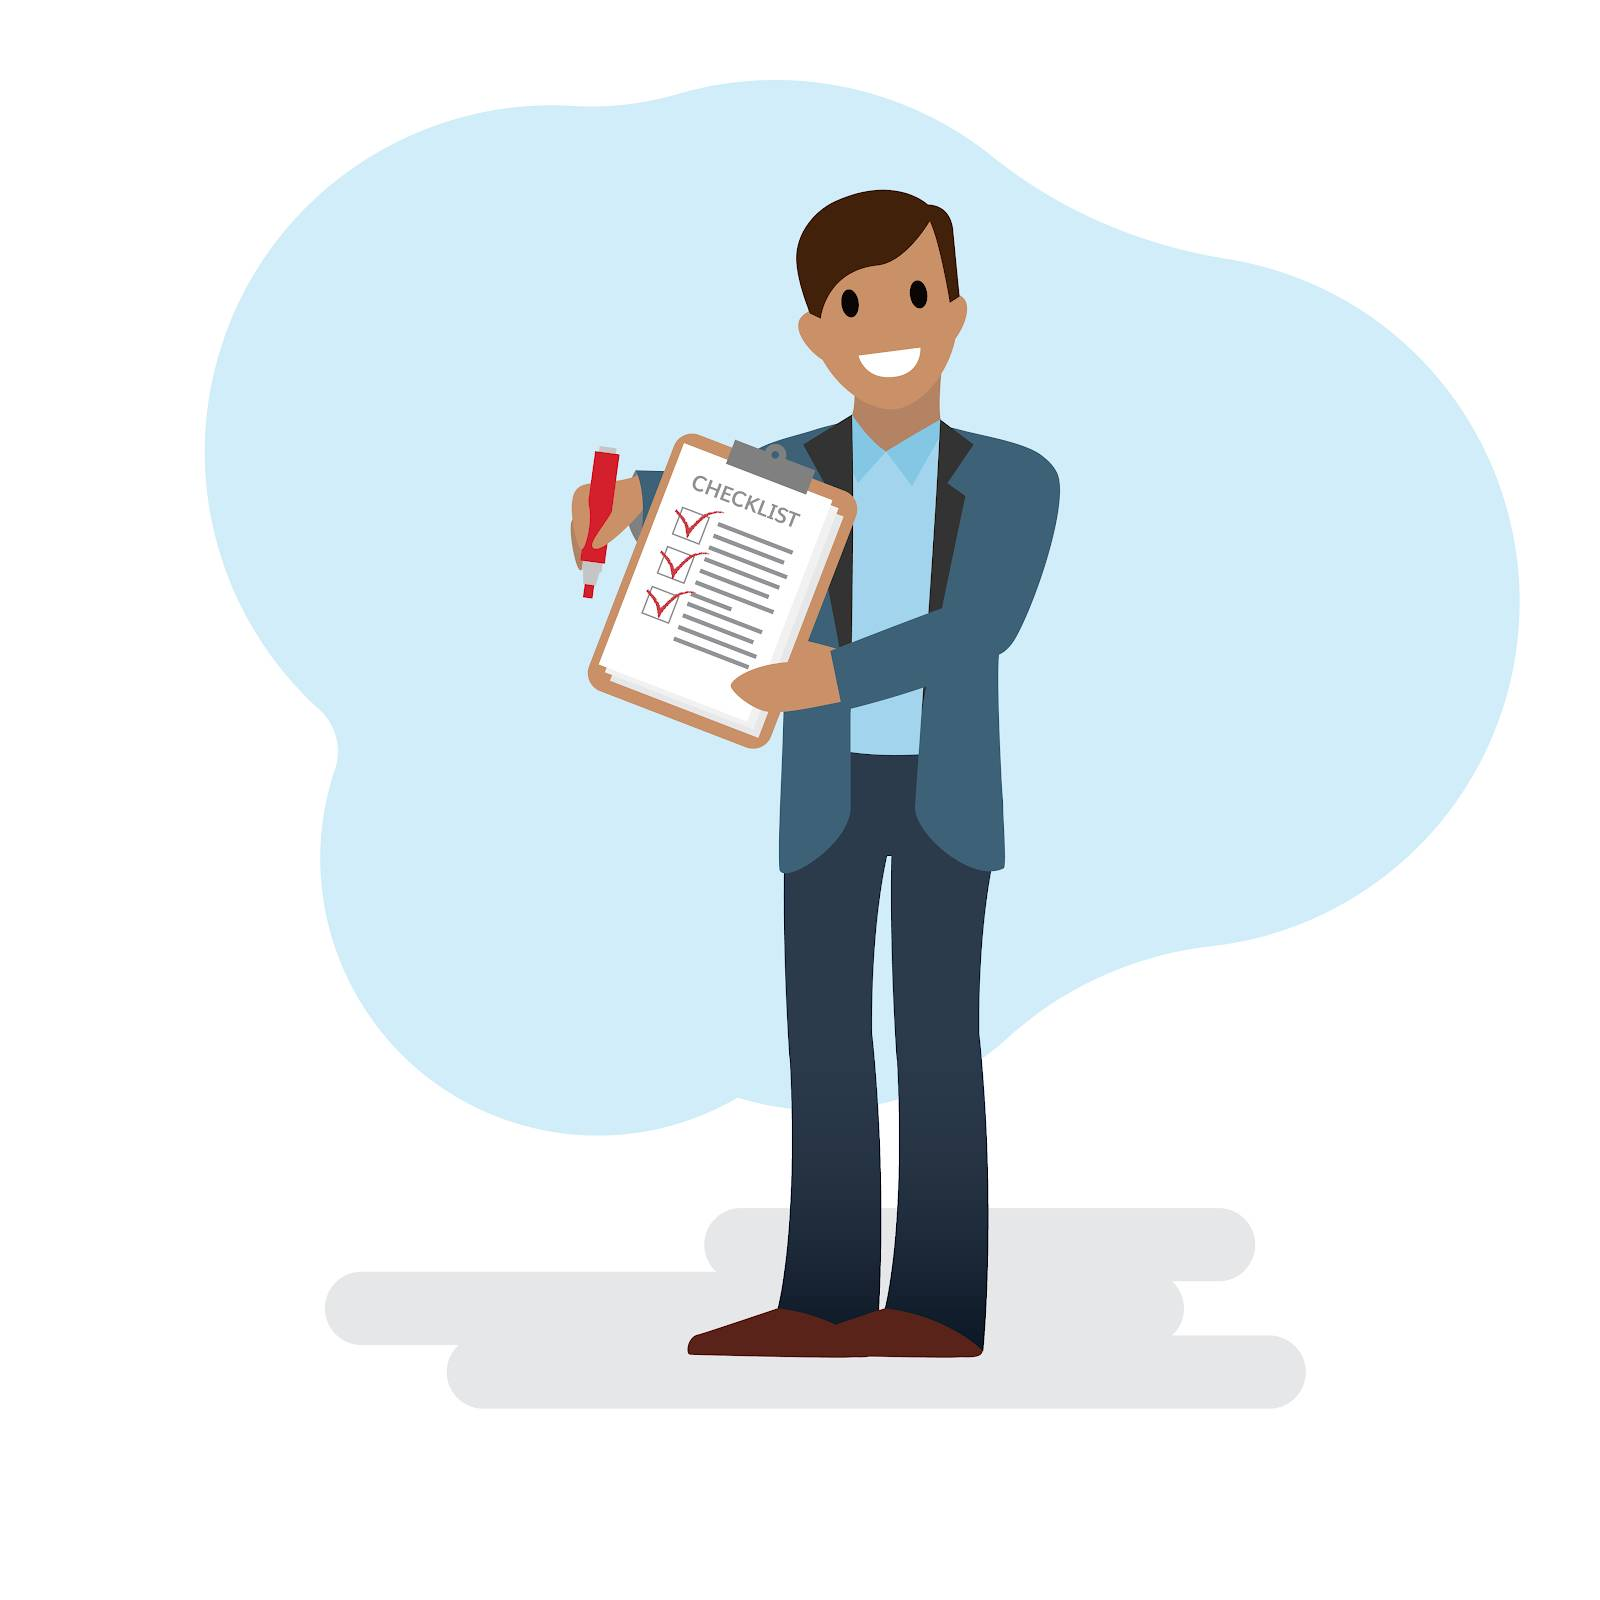 A young man, a Salesforce admin, smiles and holds a clipboard with three checkboxes. He has a pen in one hand and is in the process of checking boxes off his checklist.